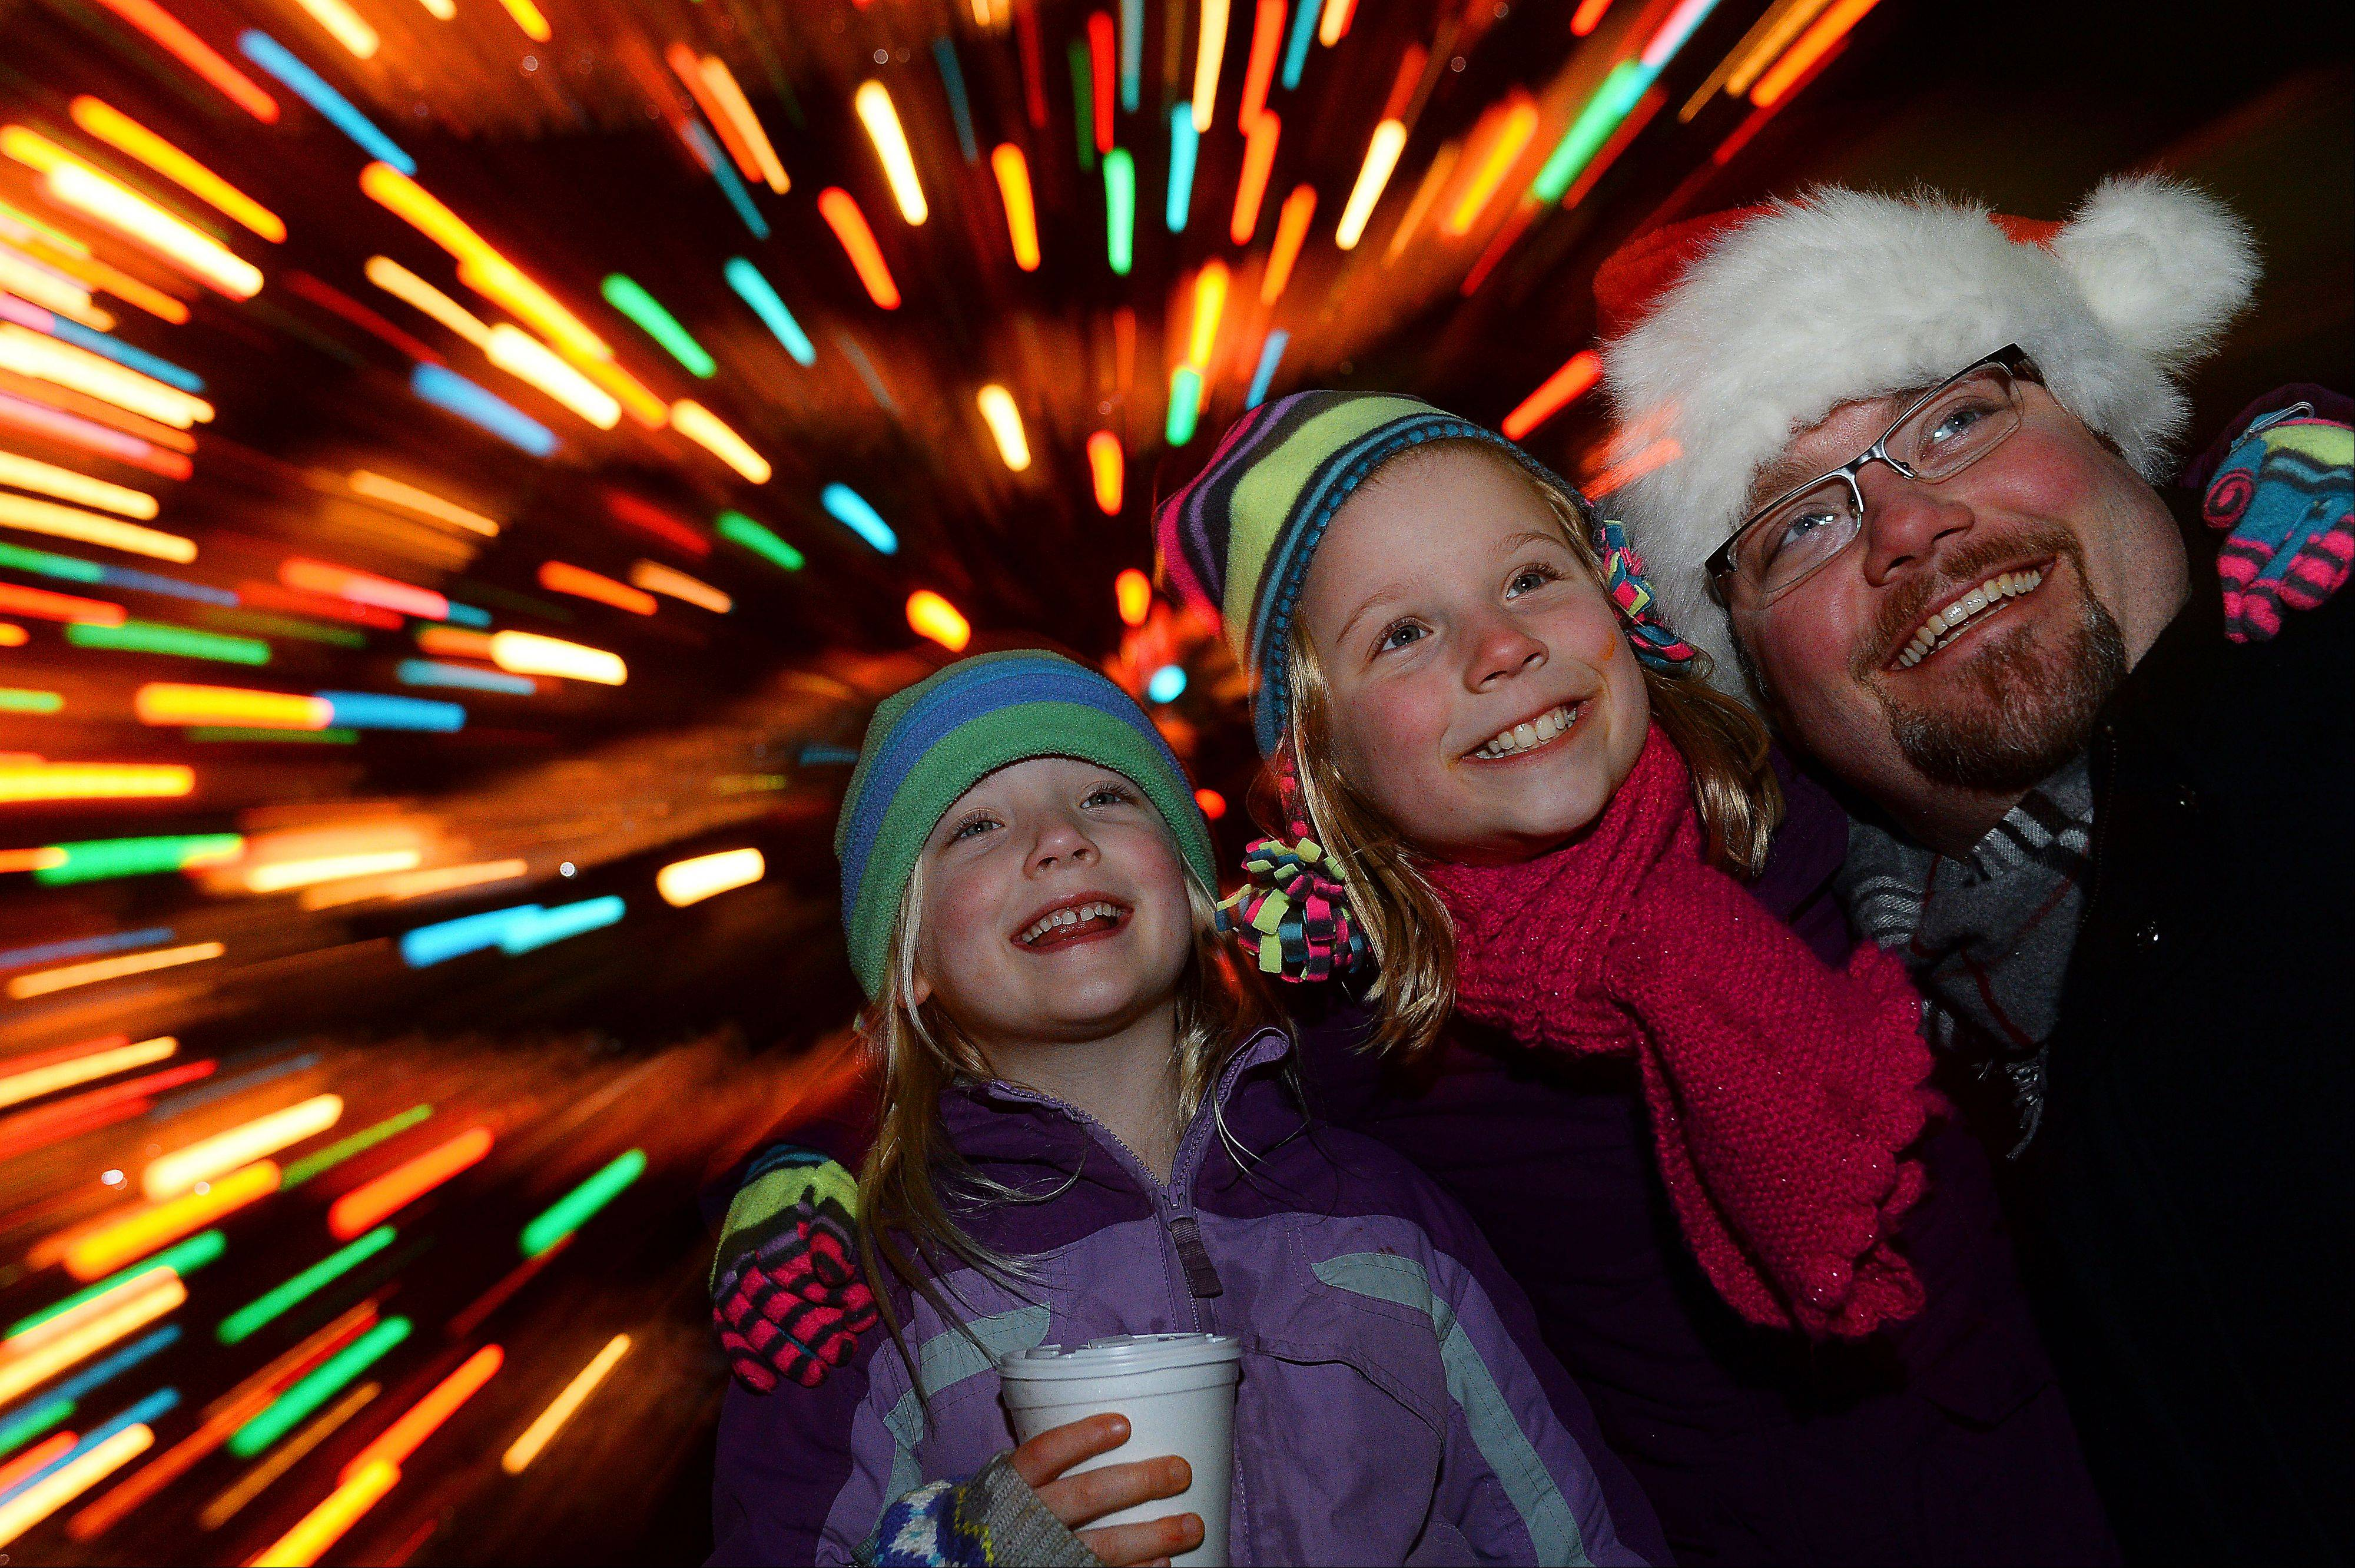 Having their picture taken by the Arlington Heights Christmas tree is a tradition for Dave Bixby and daughters, Ania, 6, and Karen, 9, of Arlington Heights.